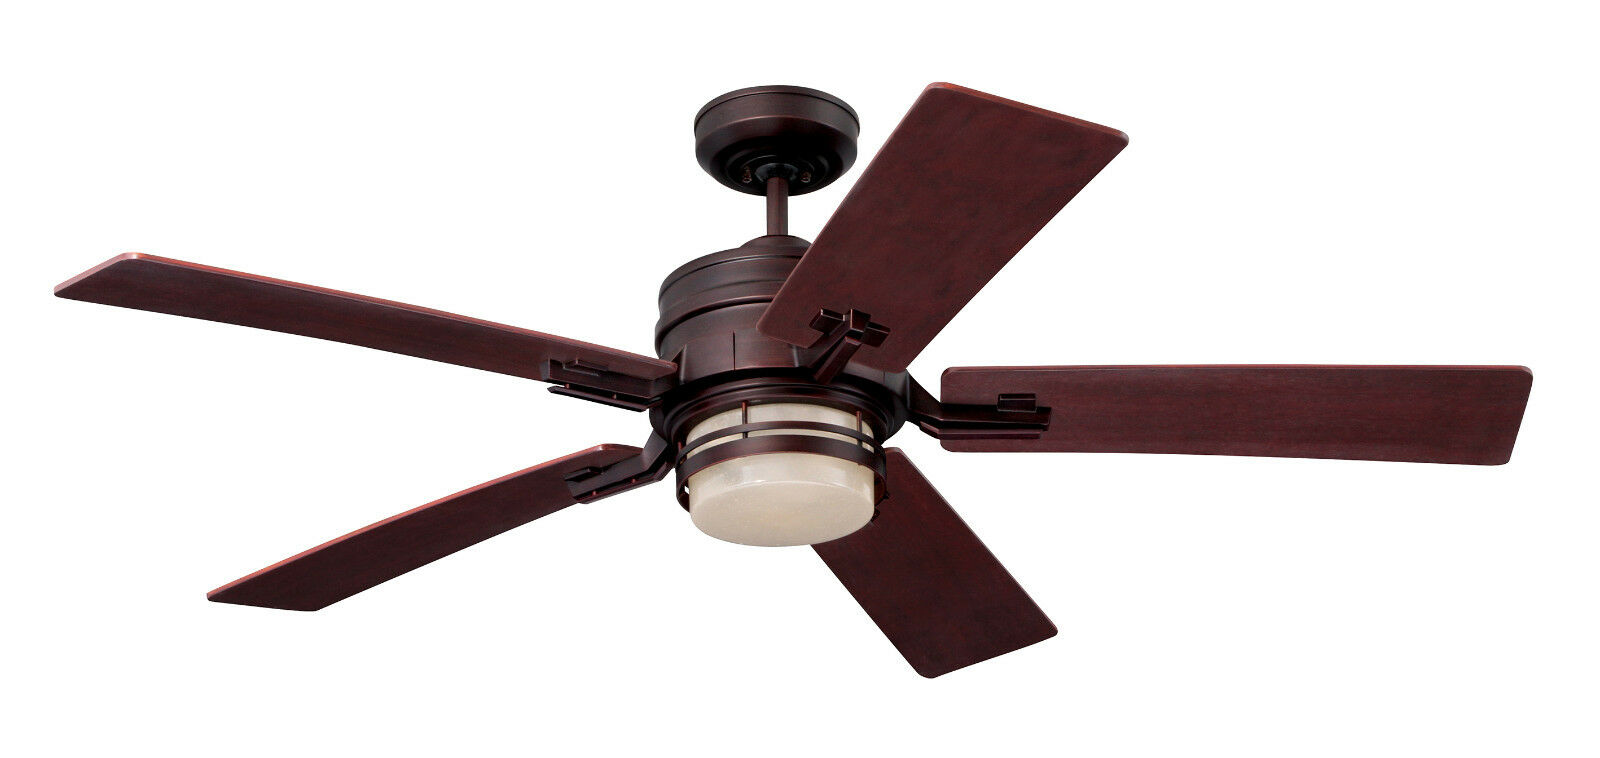 Emerson CF880 Amhurst 54 in. Ceiling Fan